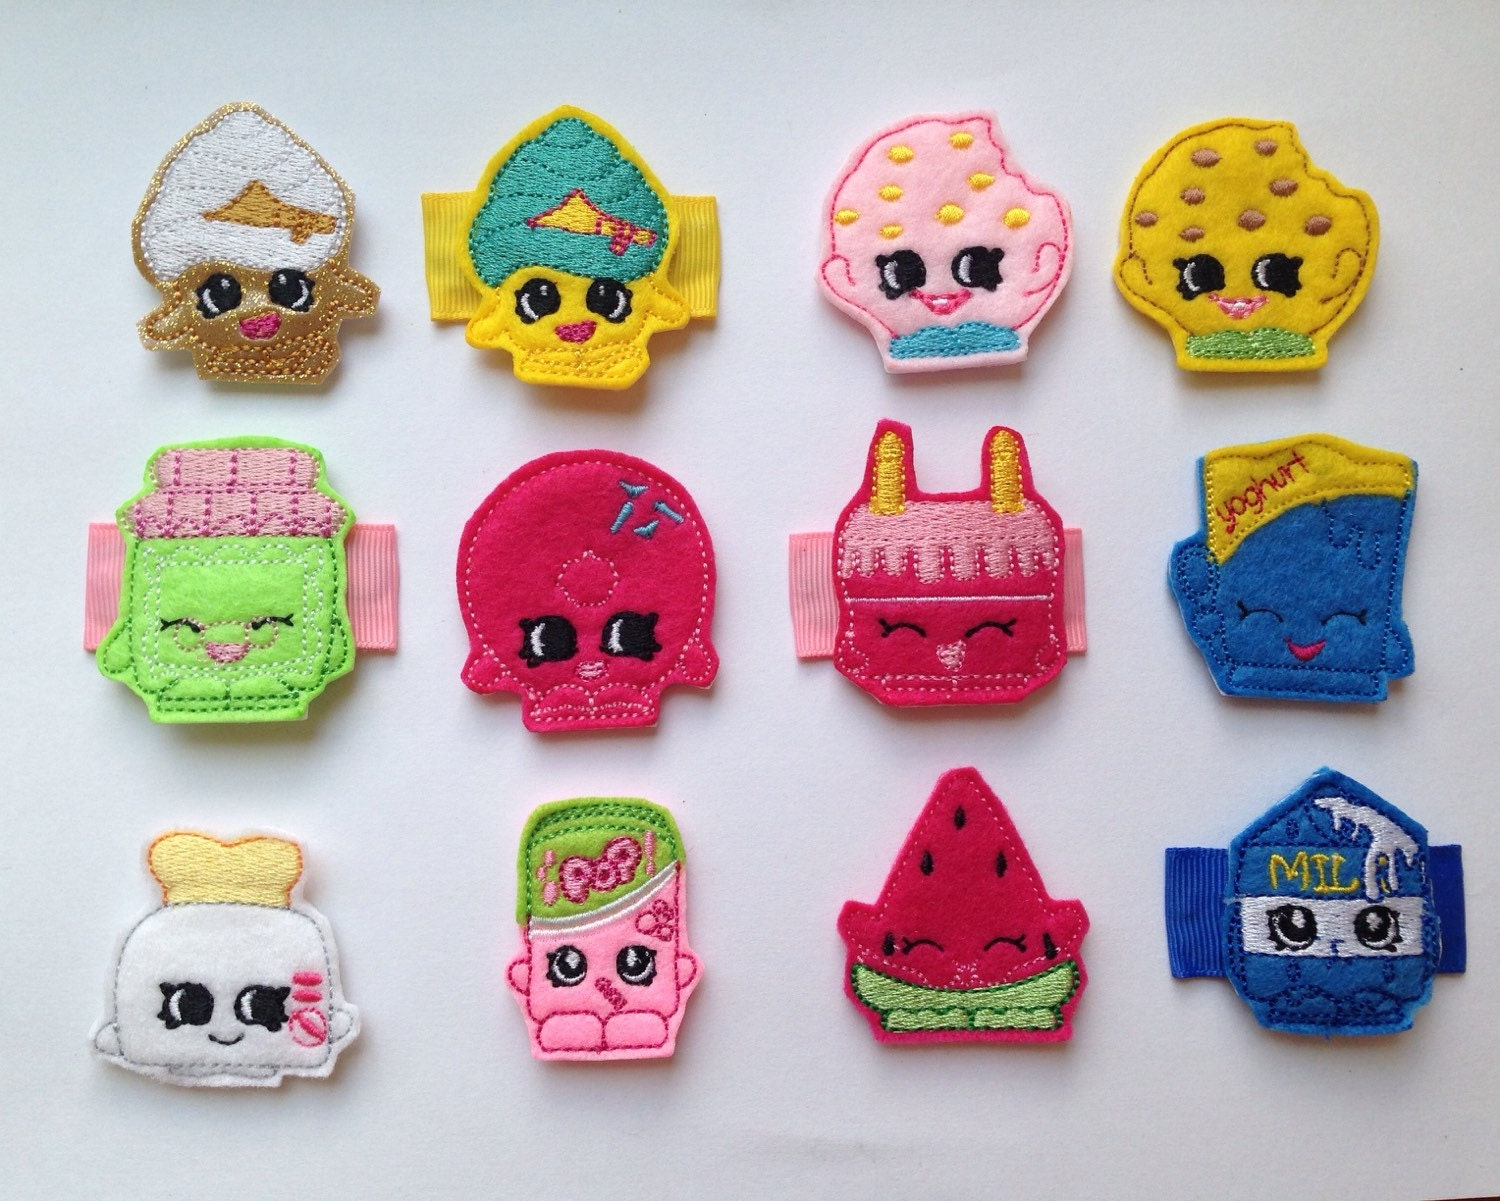 Sh shopkins coloring pages cupcake - Shopkins Hair Clip Cupcake Queen Taco Terrie Soda Pops Kooky Cookie Melonie Pips Toasty Pop Bubbles Lippy Lips Poppy Corn